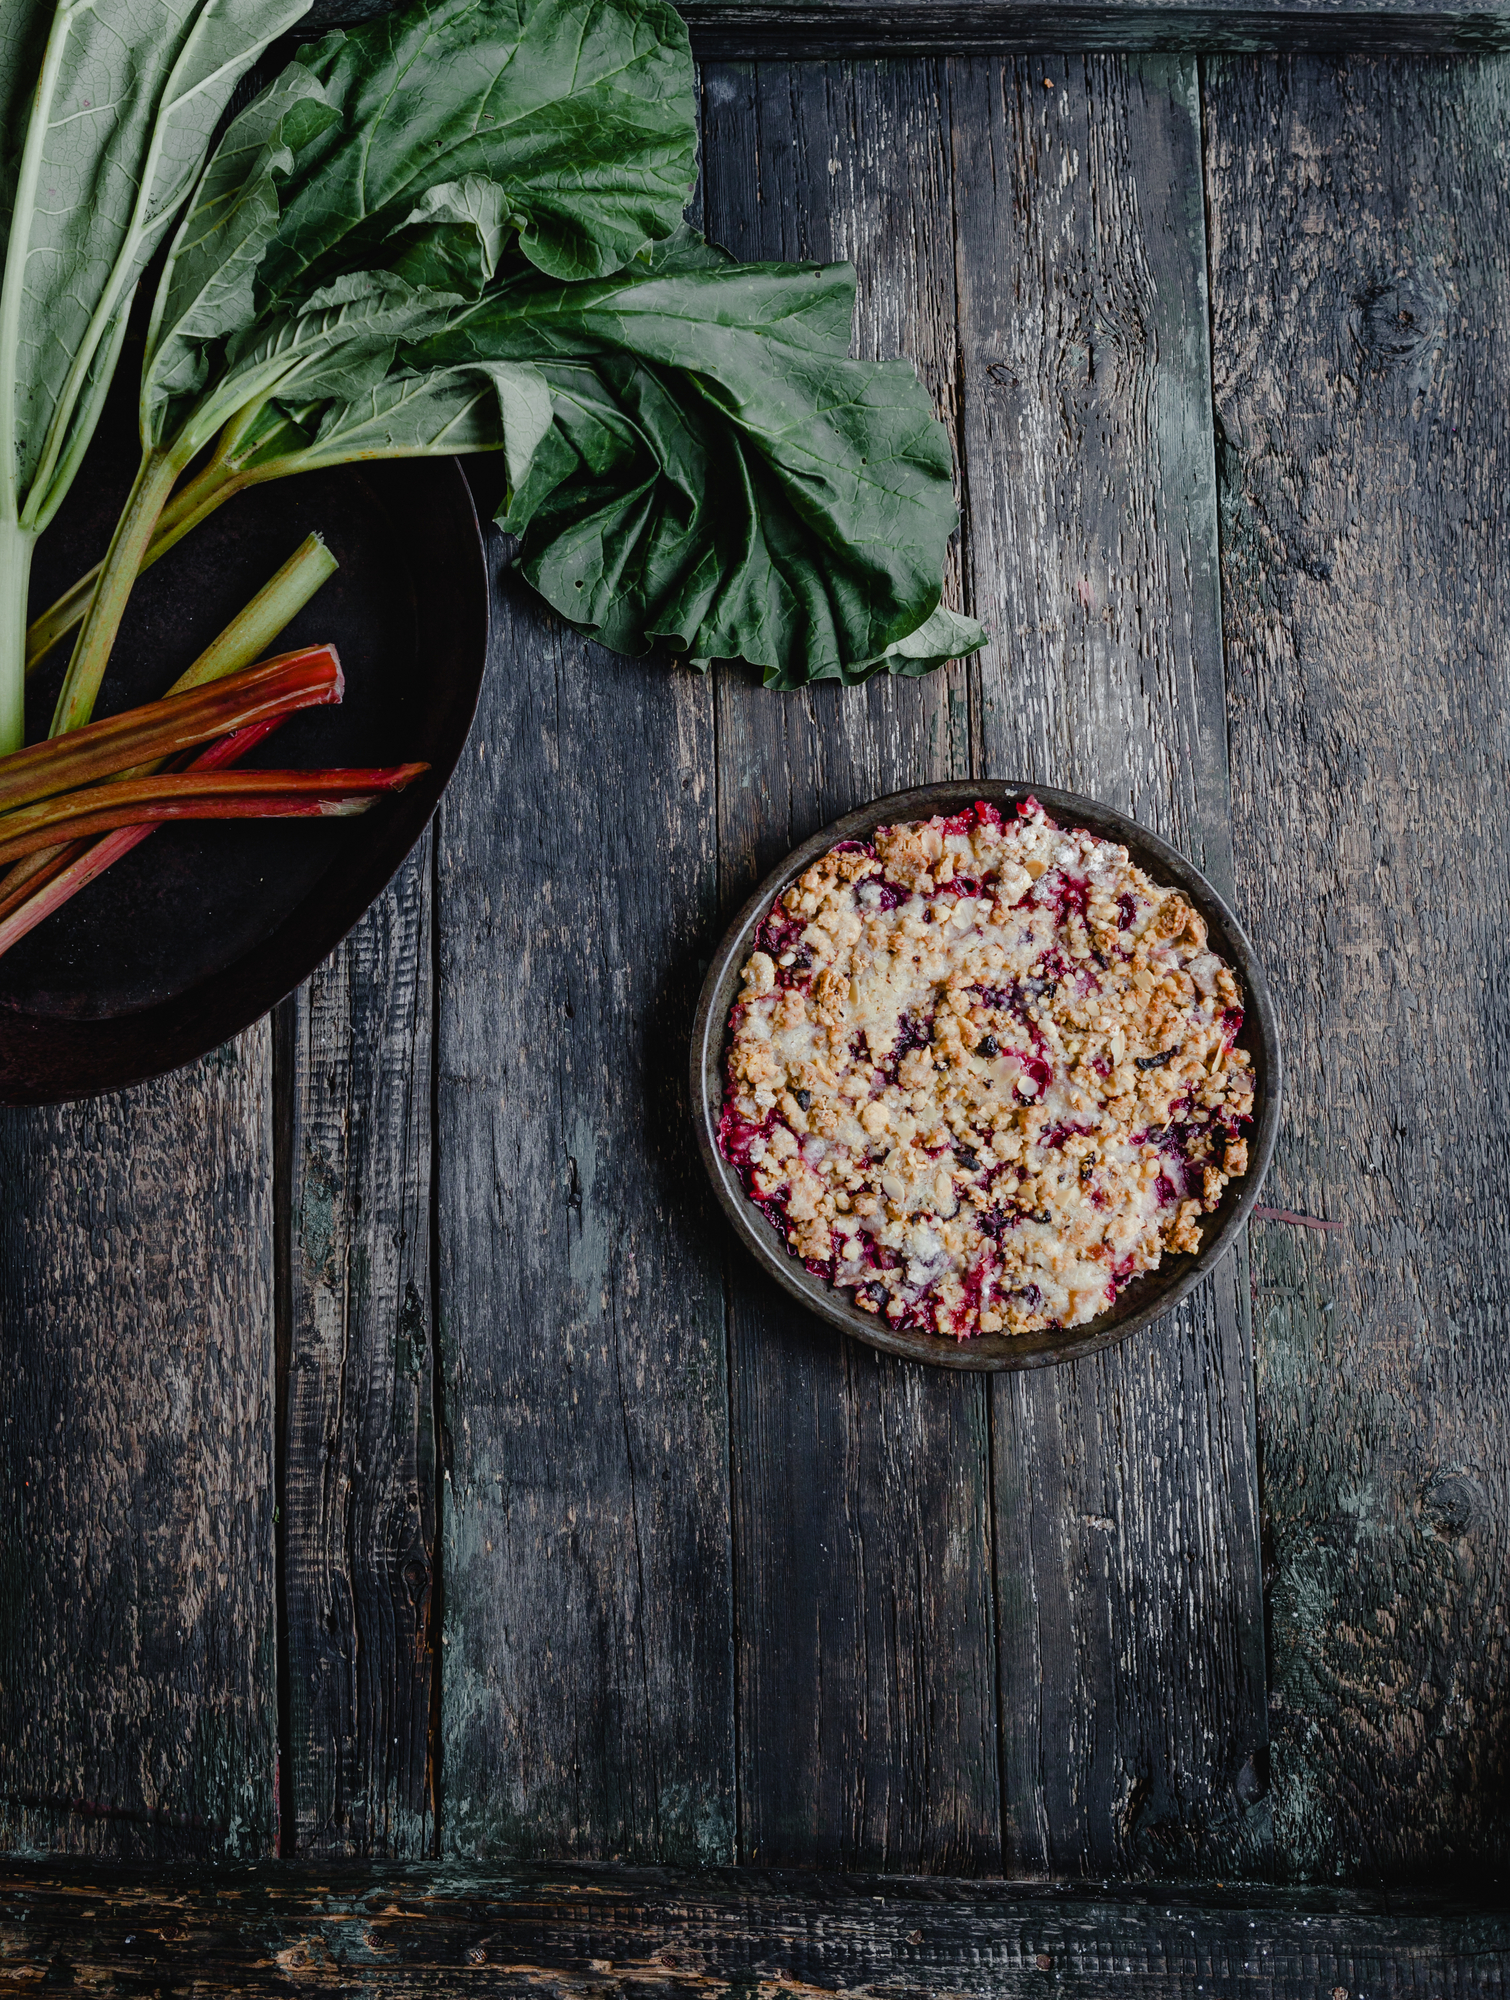 Old Fashioned Strawberry Rhubarb Pie Recipe With Streusel Crumble Topping